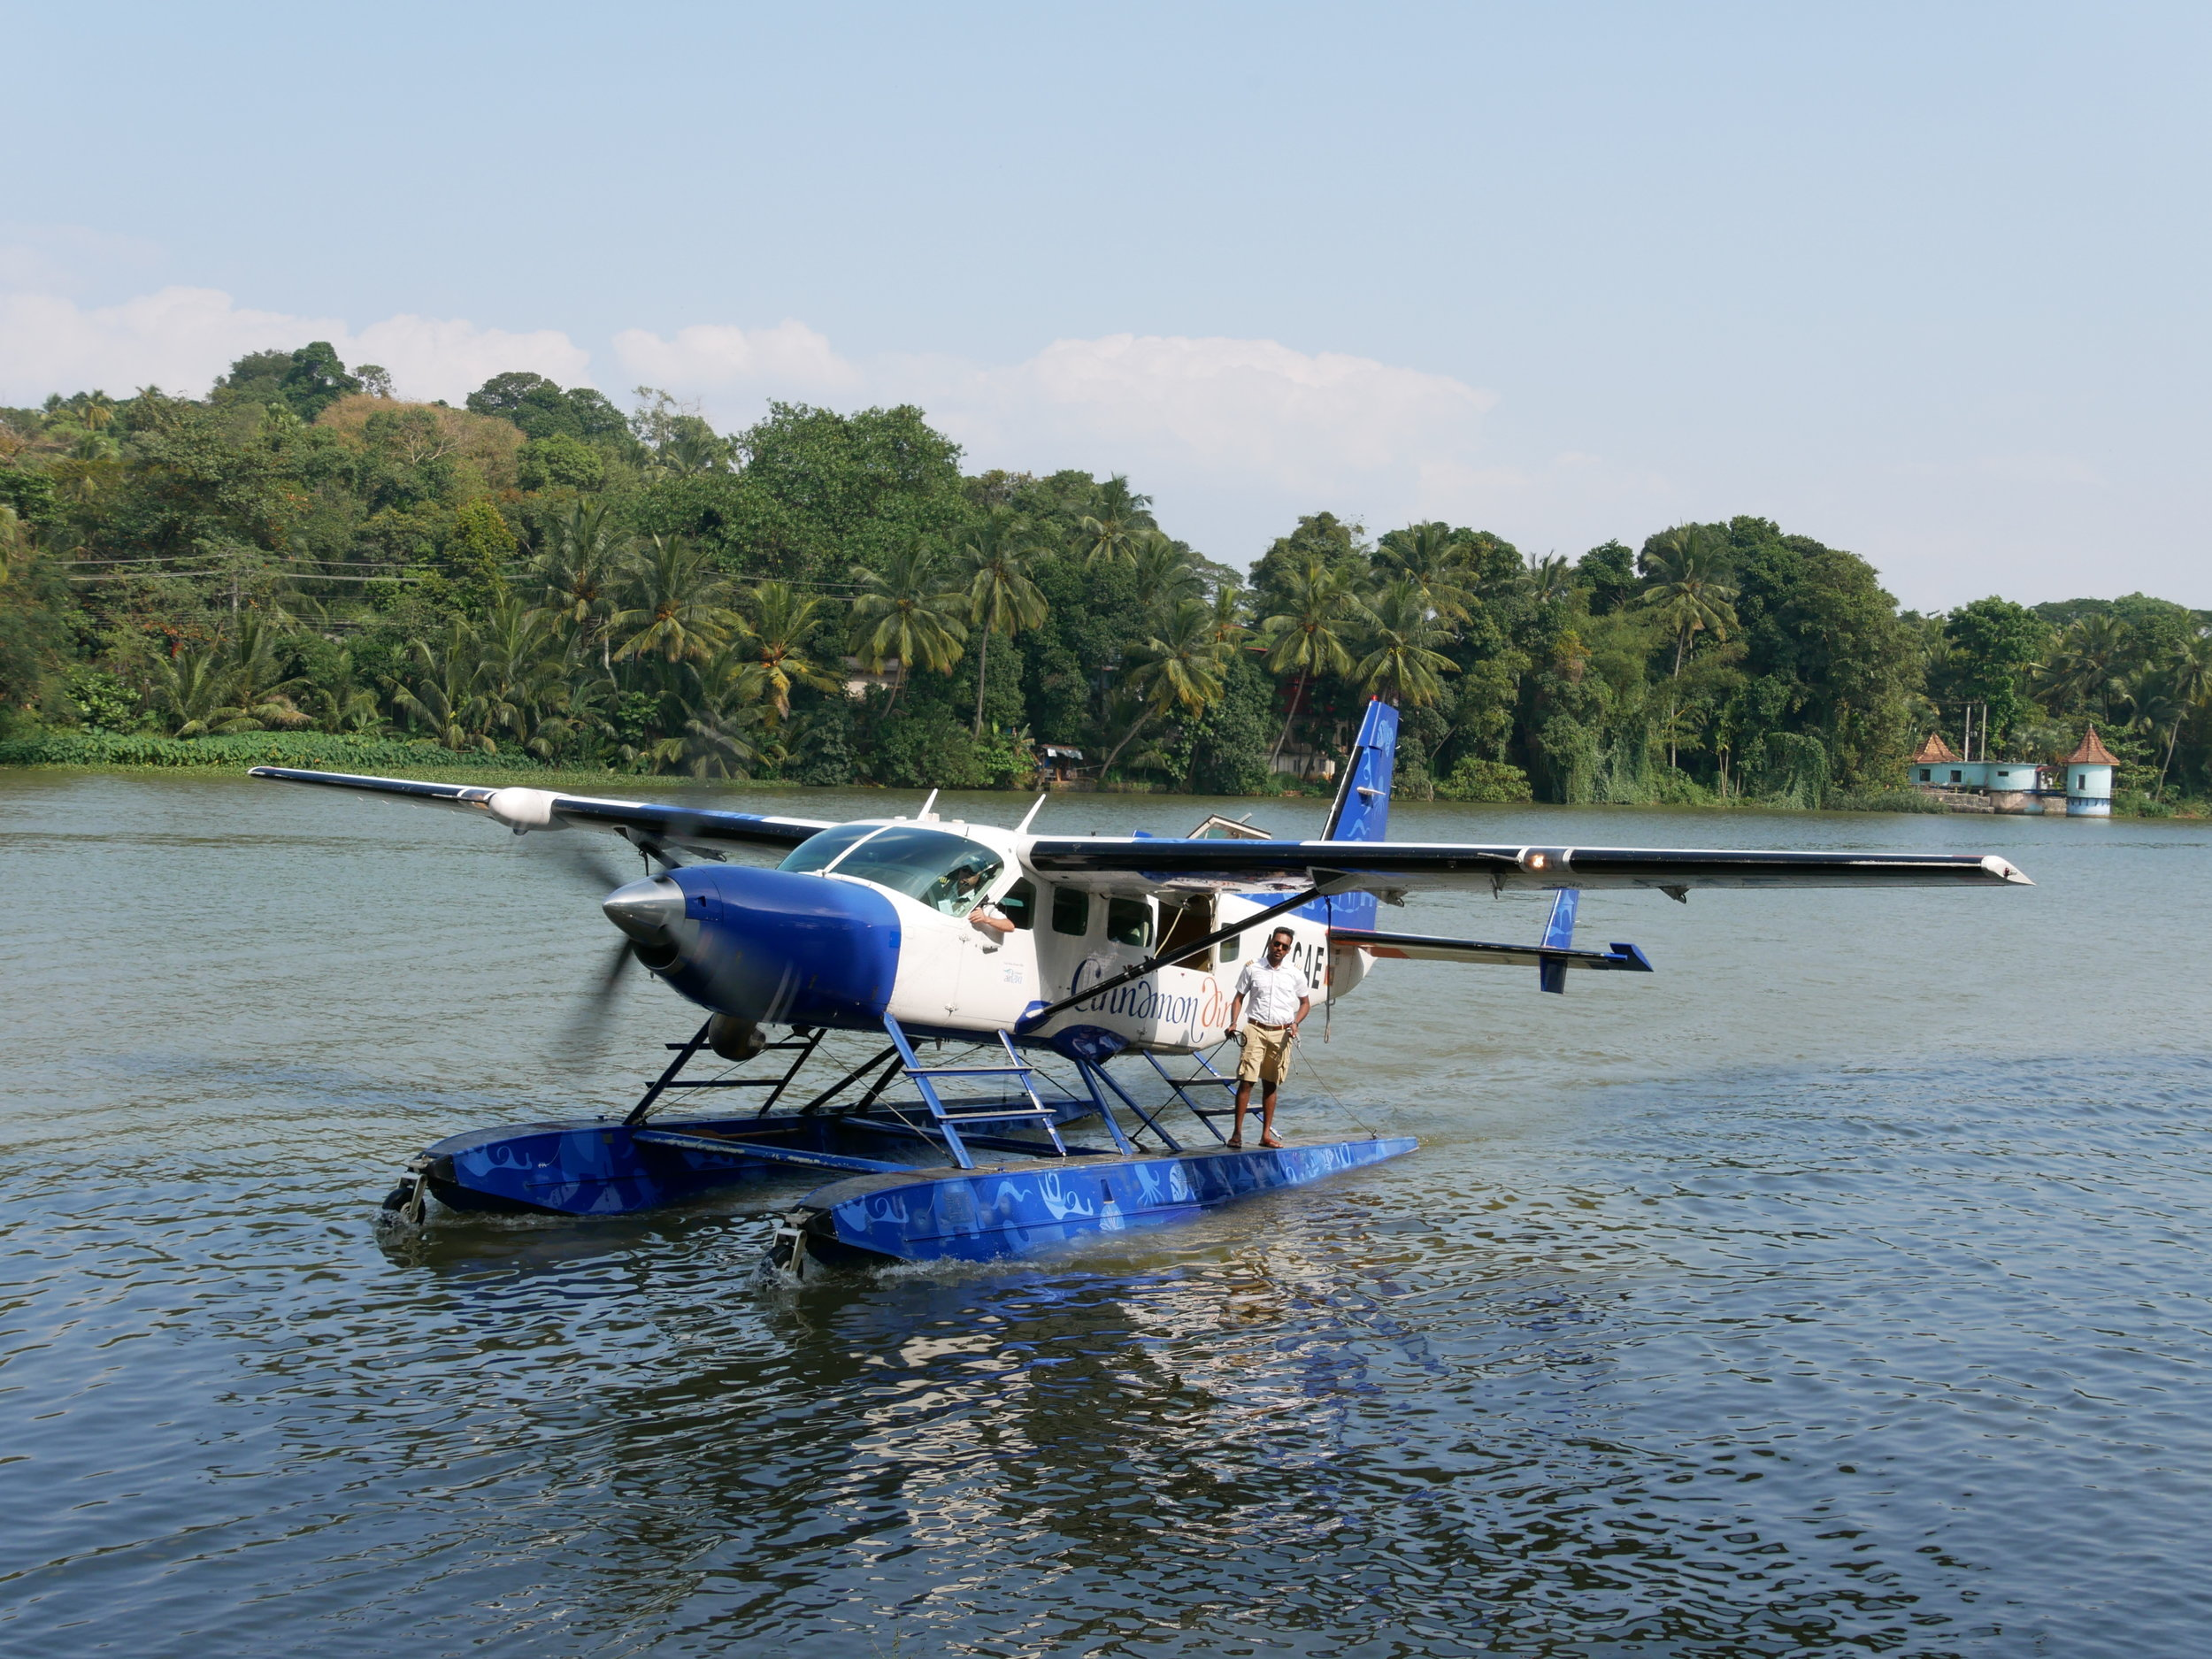 Seaplane Kandy Yala National Park Sri Lanka